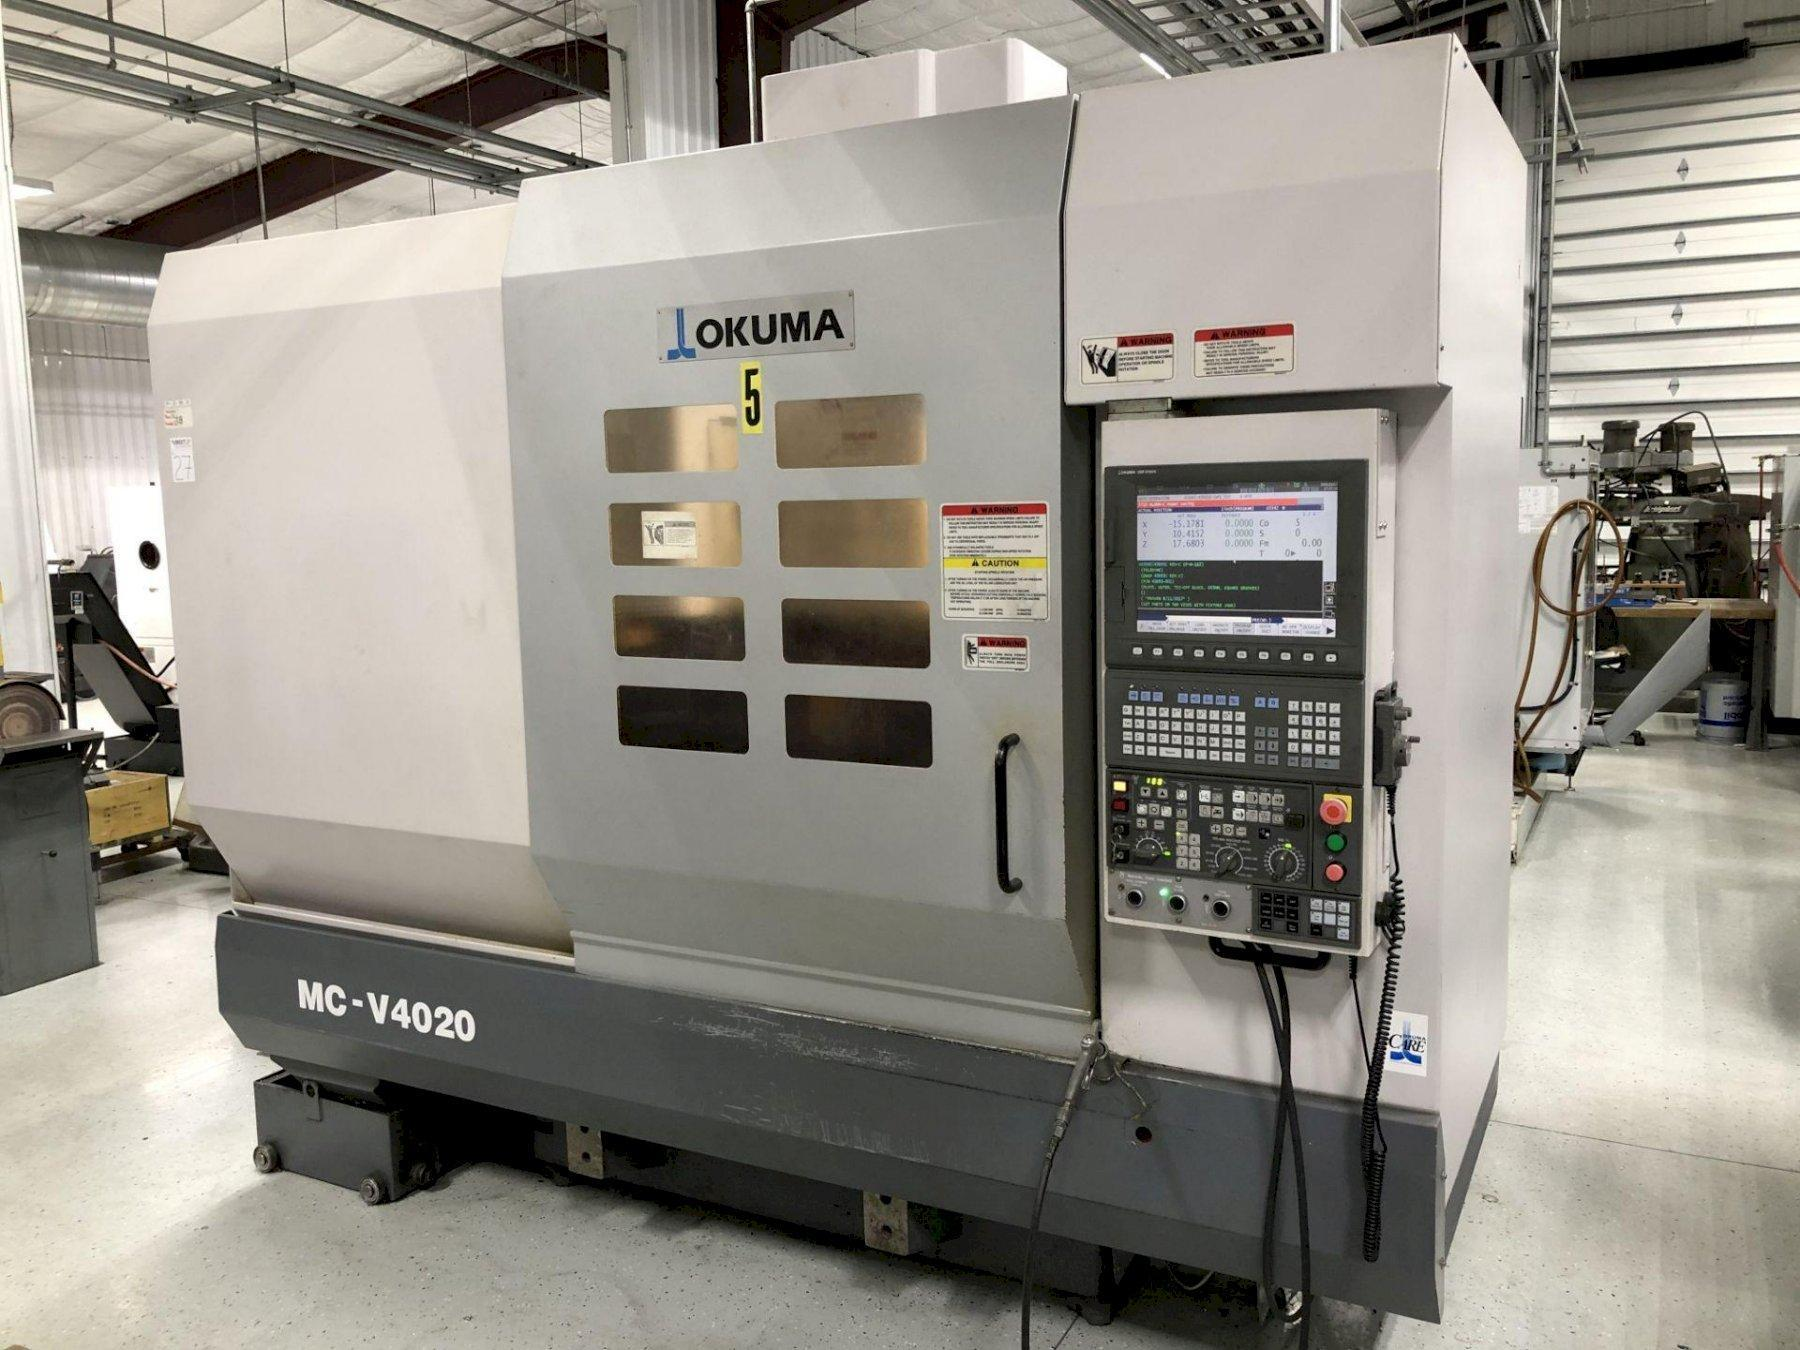 2007 Okuma MC-V4020 CNC Vertical Machining Center